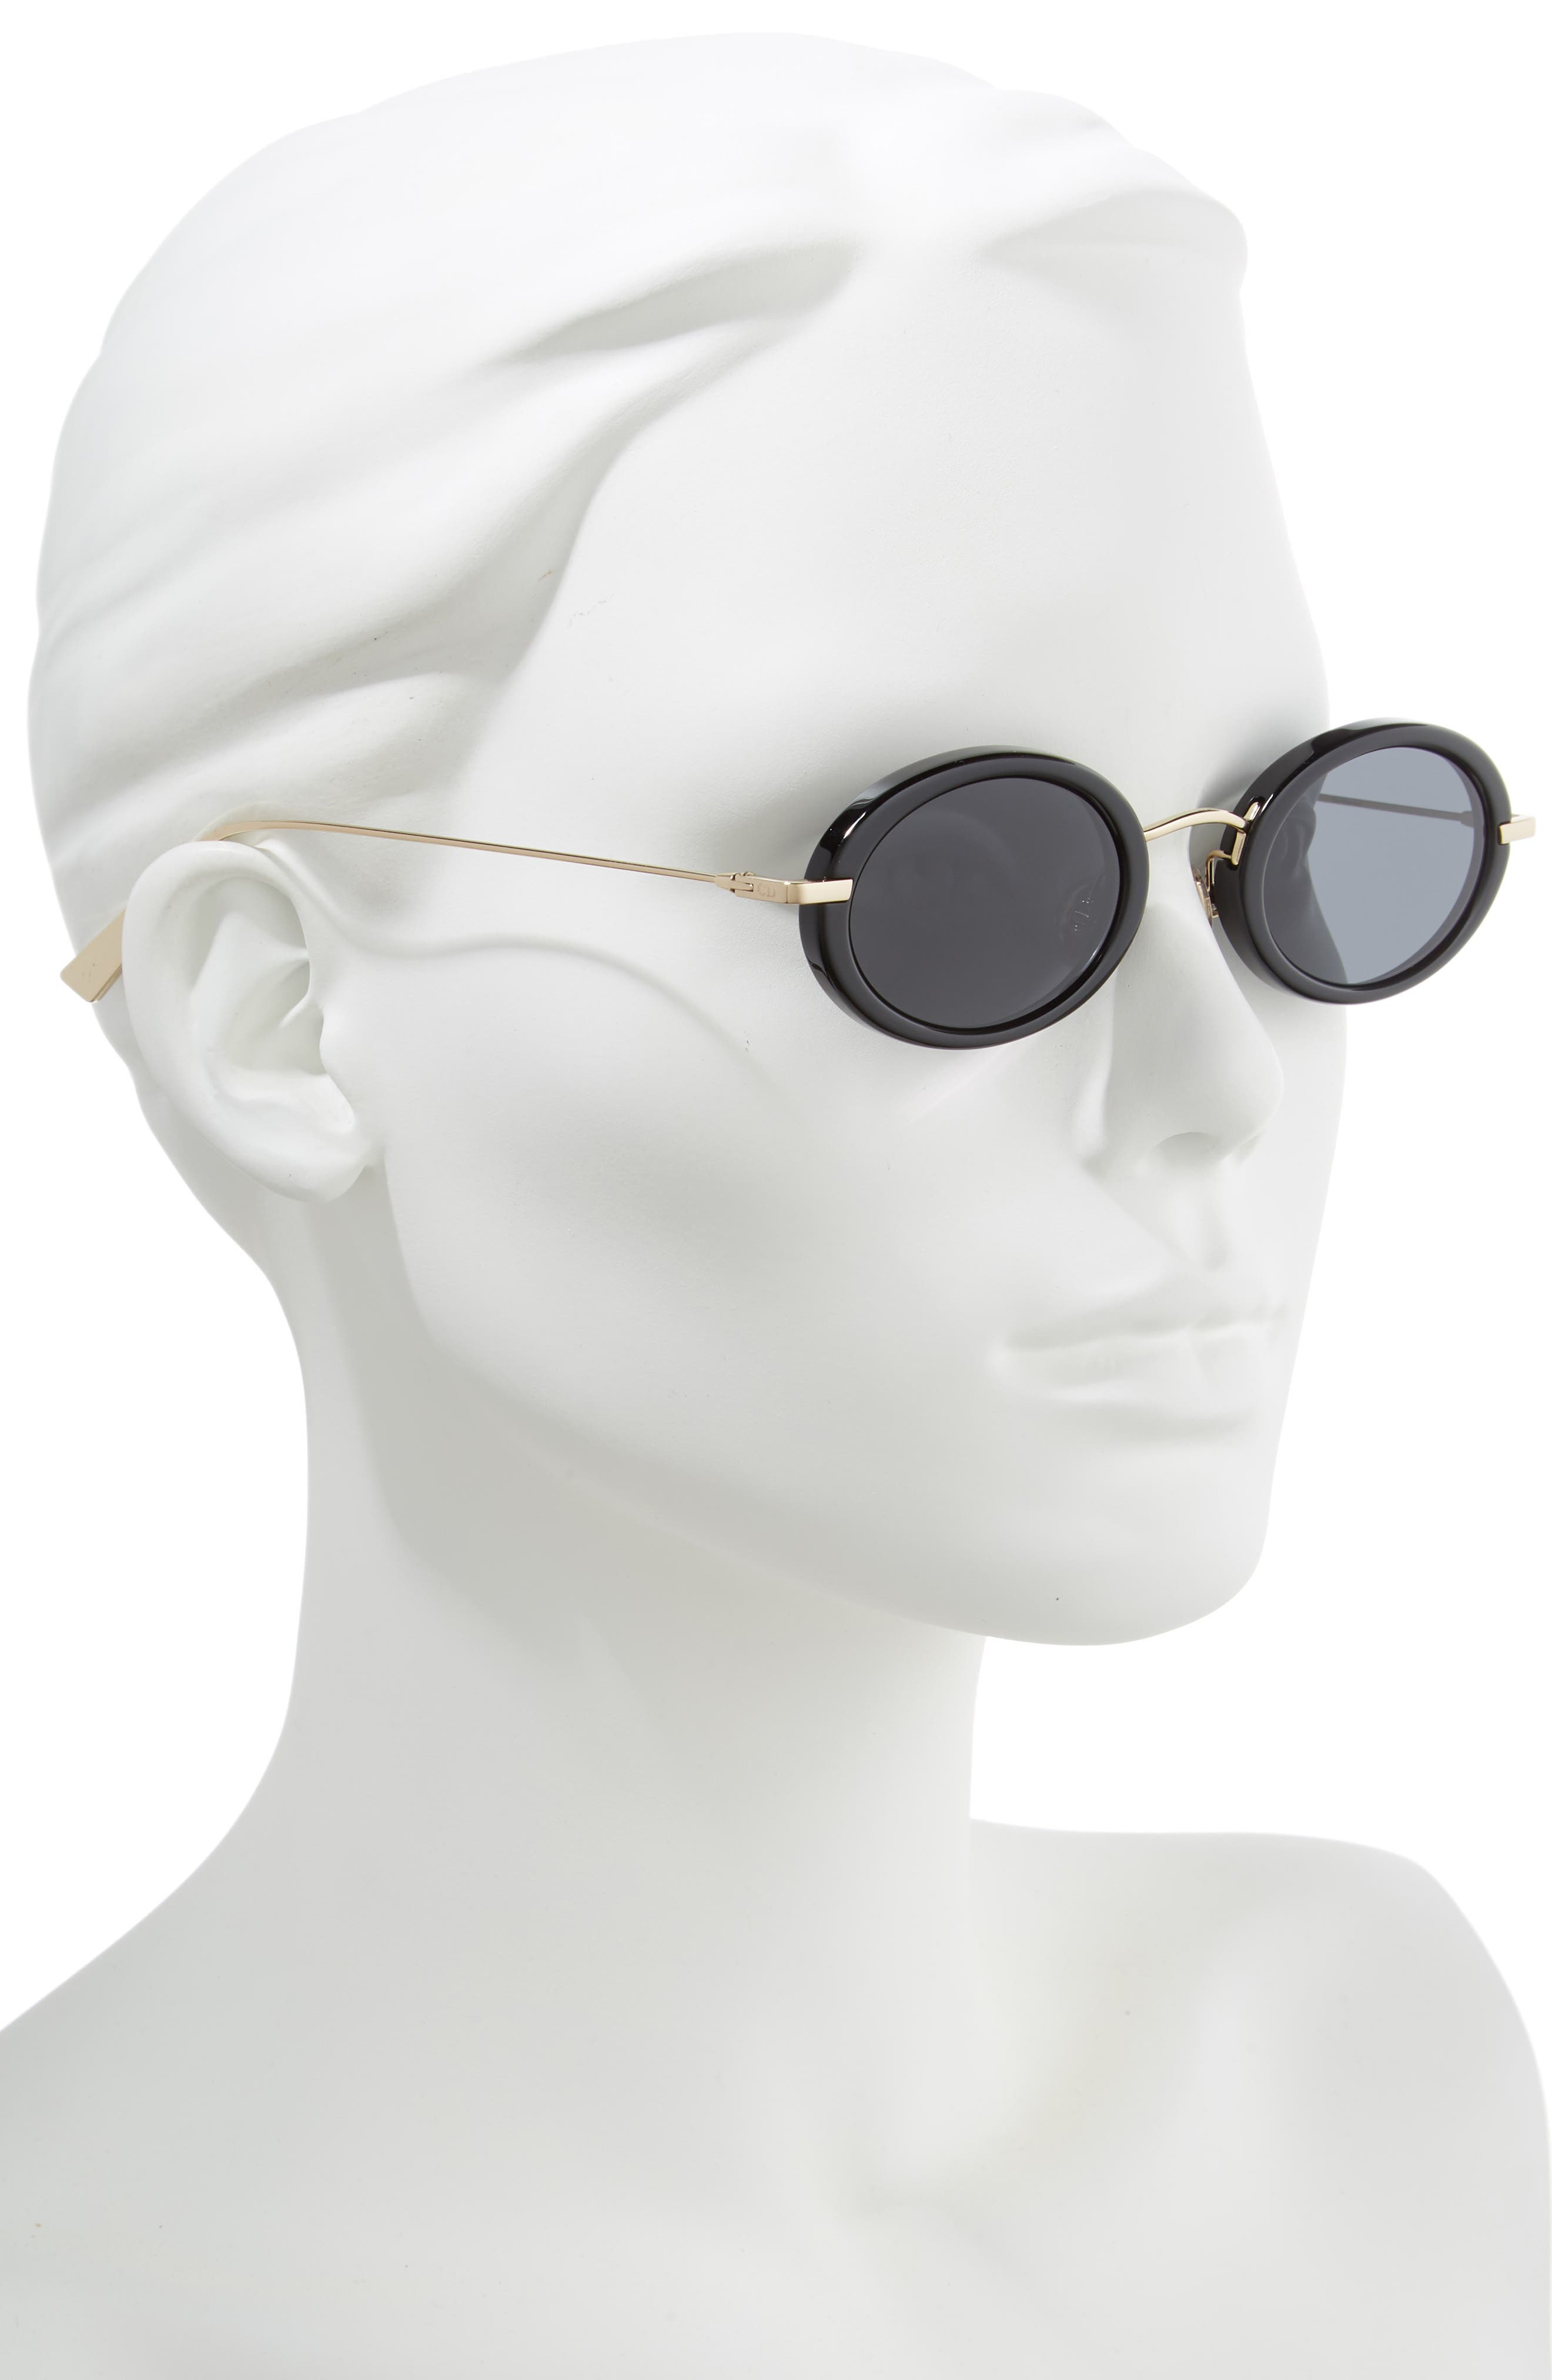 Christian Dior Hypnotic2 46mm Round Sunglasses,                             Alternate thumbnail 2, color,                             BLACK/ ANTIREFLECTIVE/ GOLD